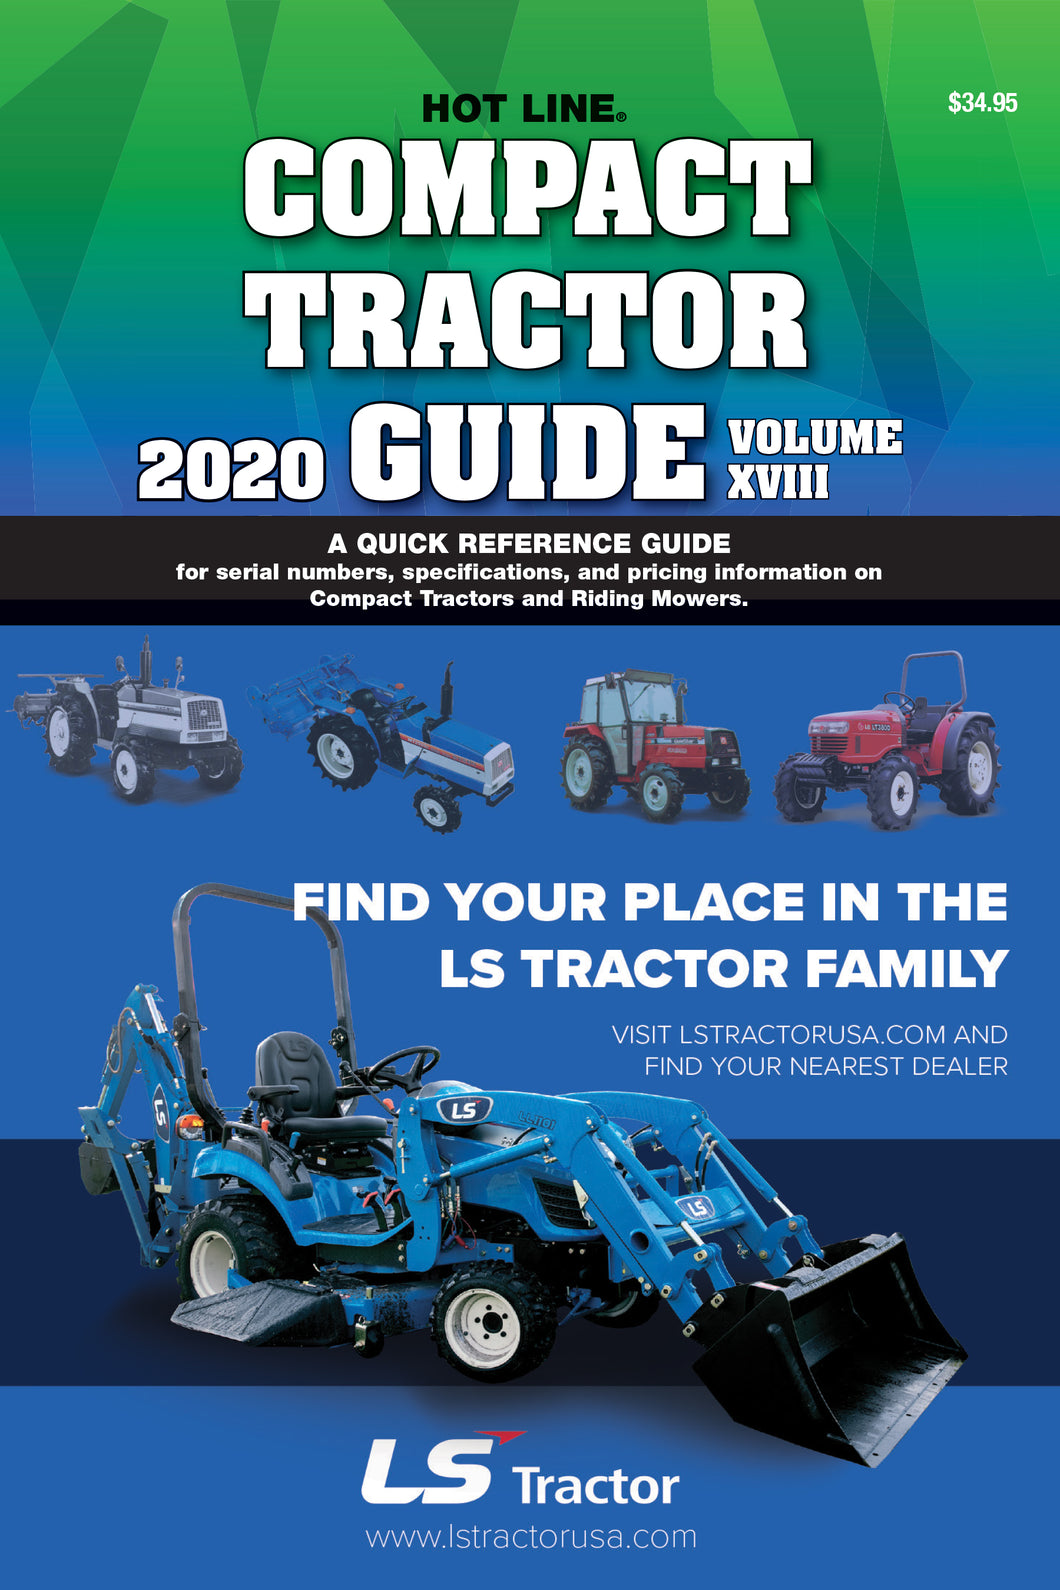 2020 Hot Line Compact Tractor Guide